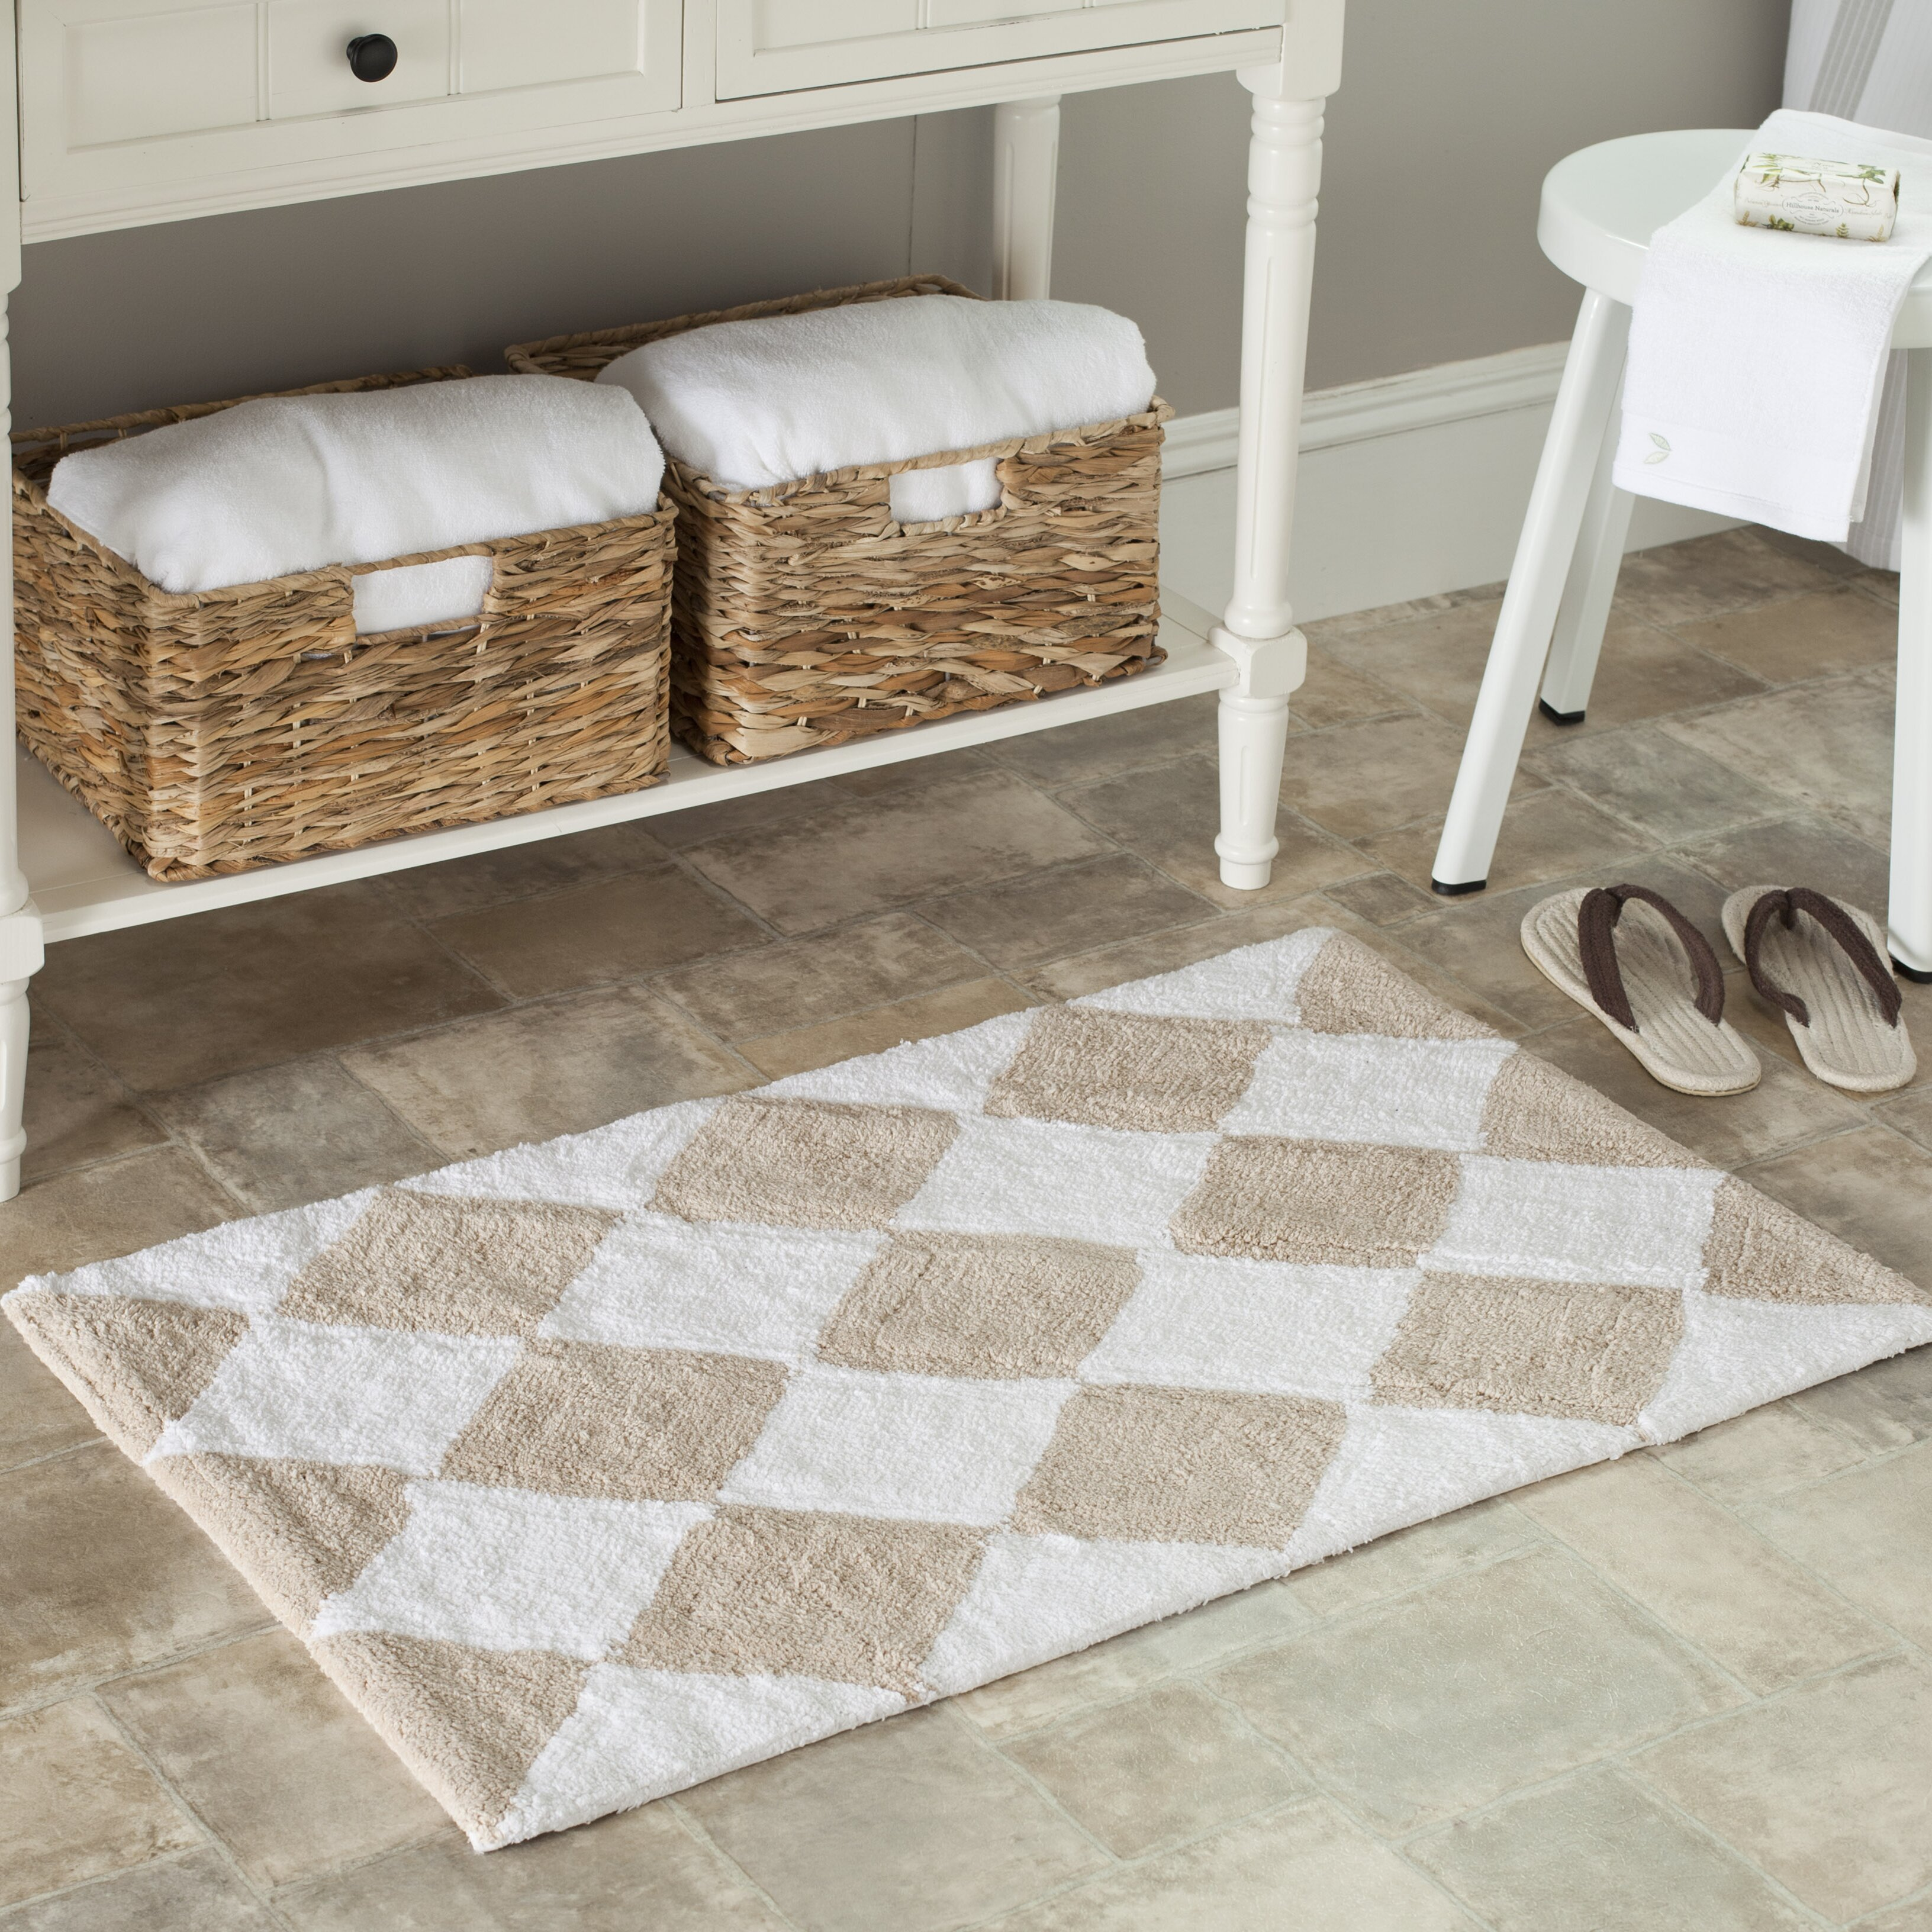 Safavieh plush master geometric bath rug reviews wayfair for Master bathroom rugs